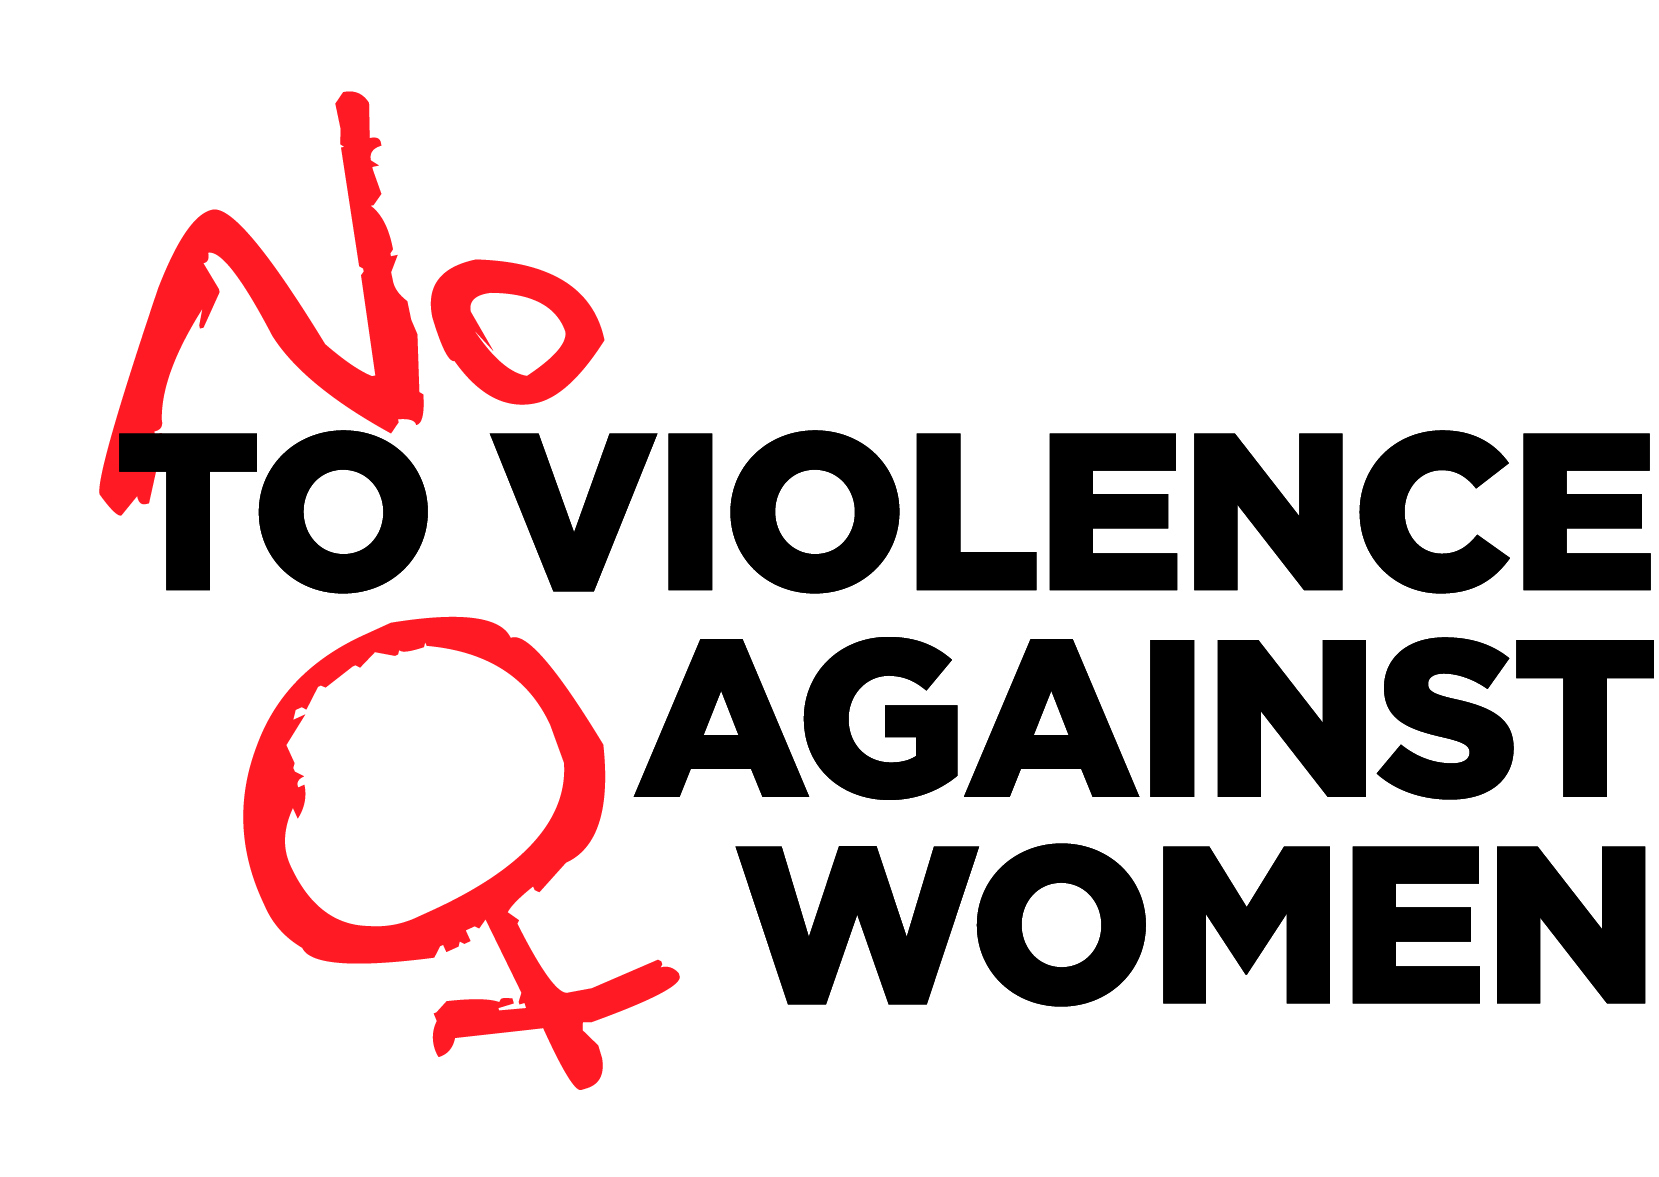 The Newspaper Essay Education Trade Unions At The Forefront Of The Campaign To Eliminate  Violence Against Women How To Use A Thesis Statement In An Essay also My First Day Of High School Essay Home  European Trade Union Committee For Education Essay Thesis Statement